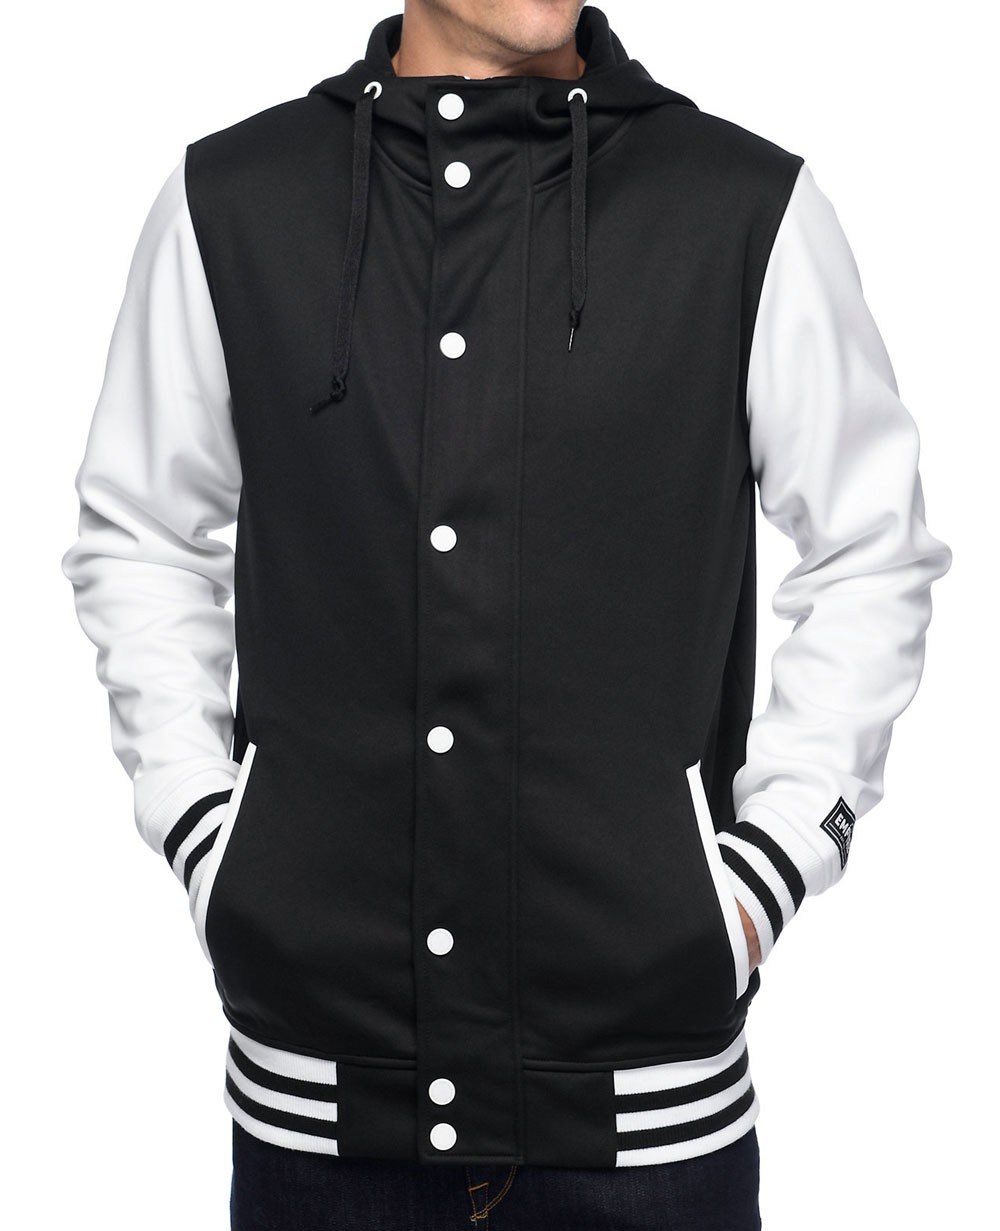 All Black &amp White Varsity Tech Fleece Jacket